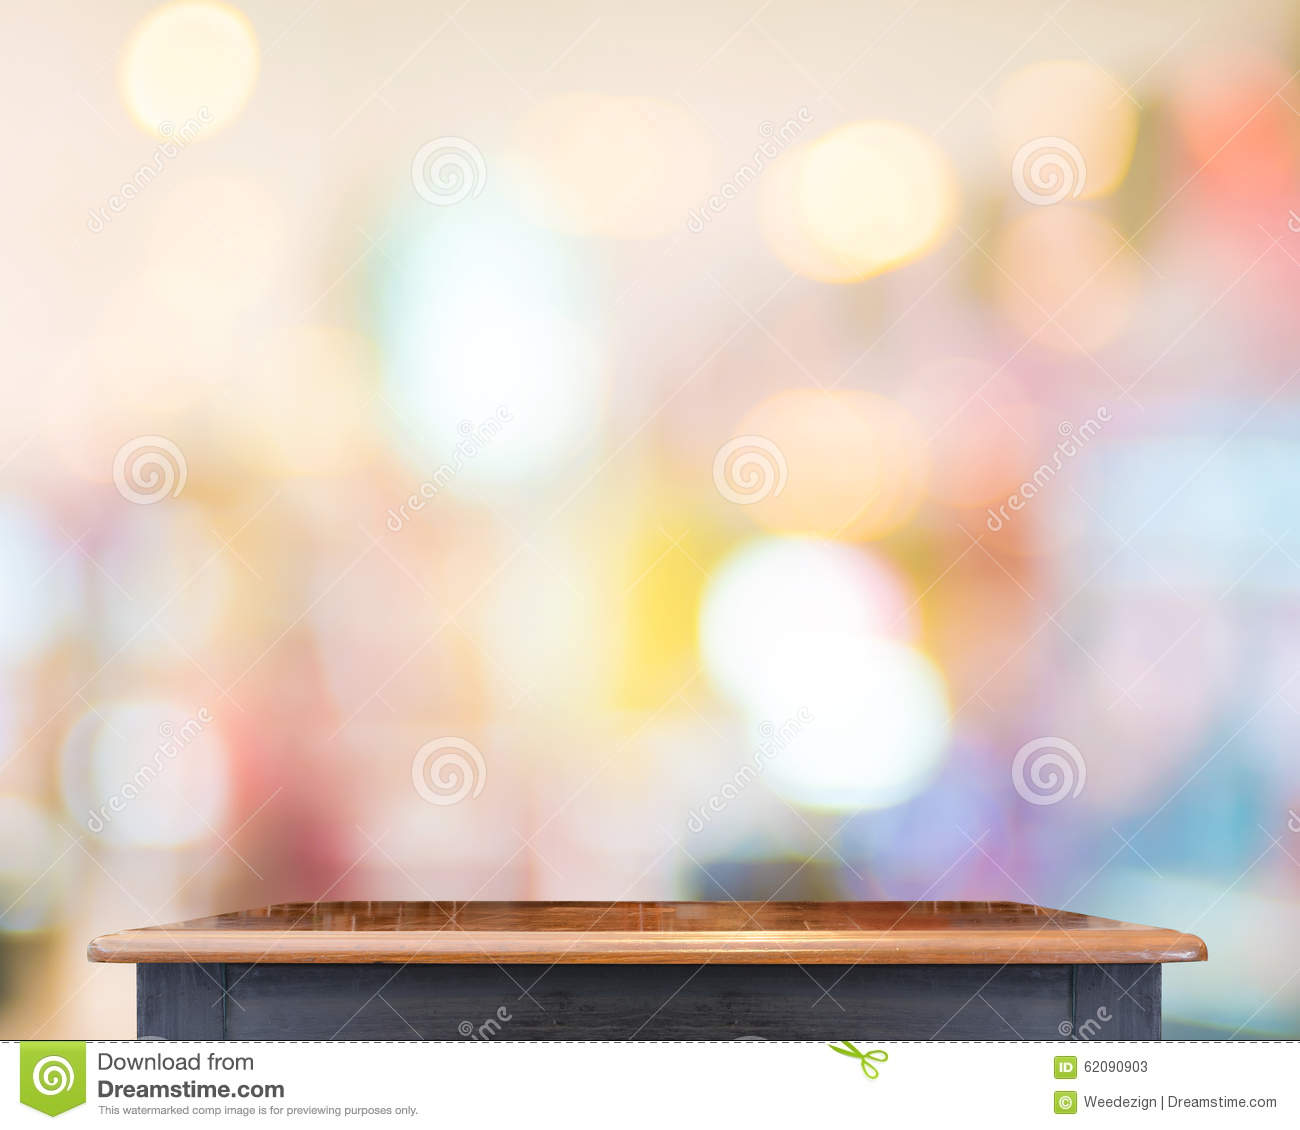 Empty wooden table top with blur store background template mock empty wooden table top with blur store background template mock maxwellsz